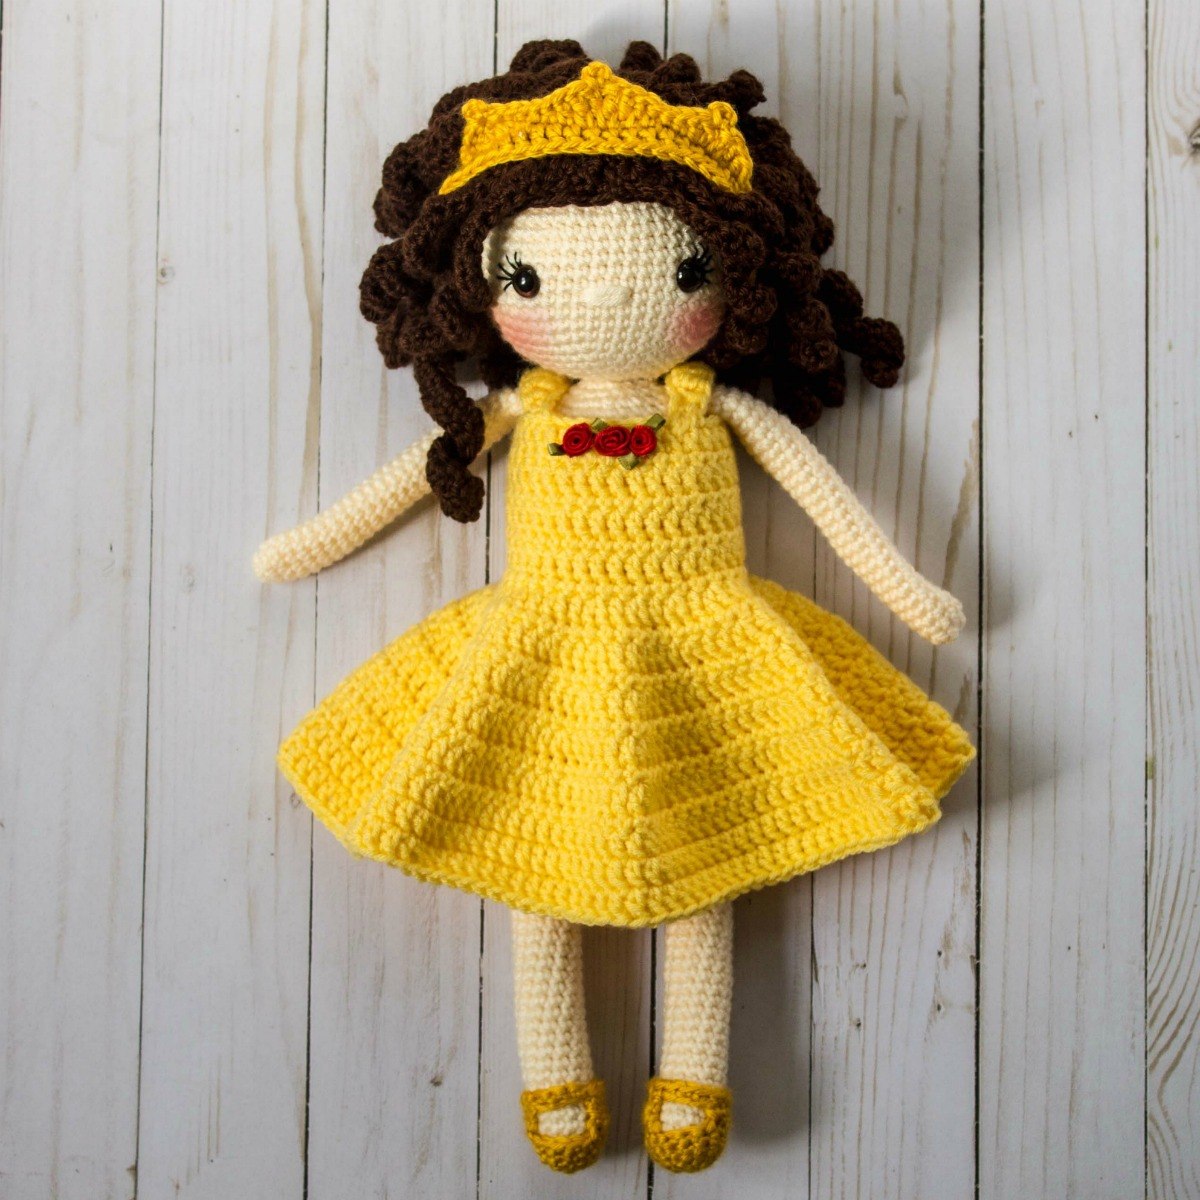 Amigurumi Doll İnnocent Baby Free Crochet Pattern - Crochet.msa.plus | 1200x1200